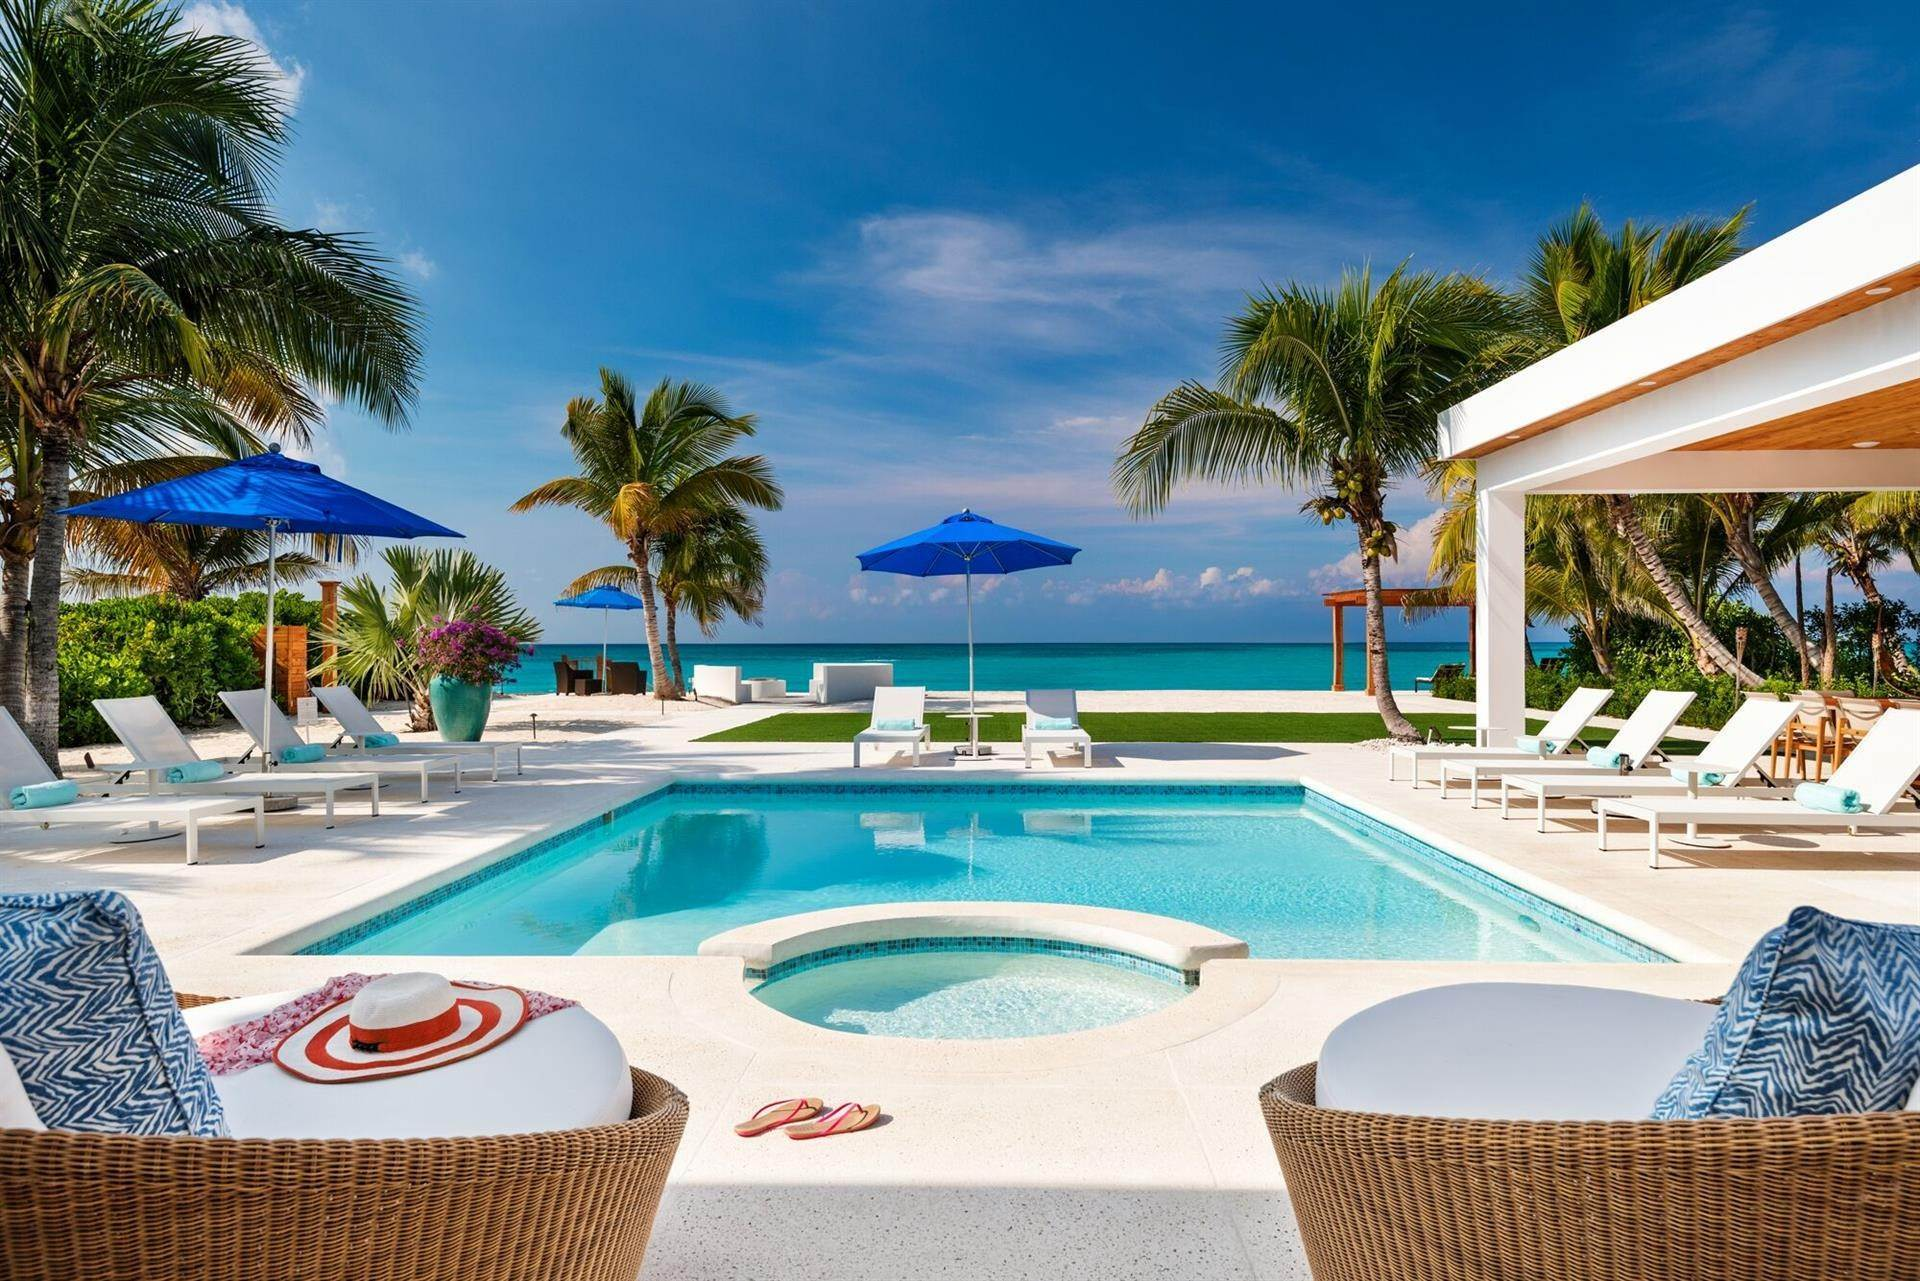 Estate for Sale at Beachfront, Leeward Footprints Villa Leeward, Providenciales,BWI Turks And Caicos Islands